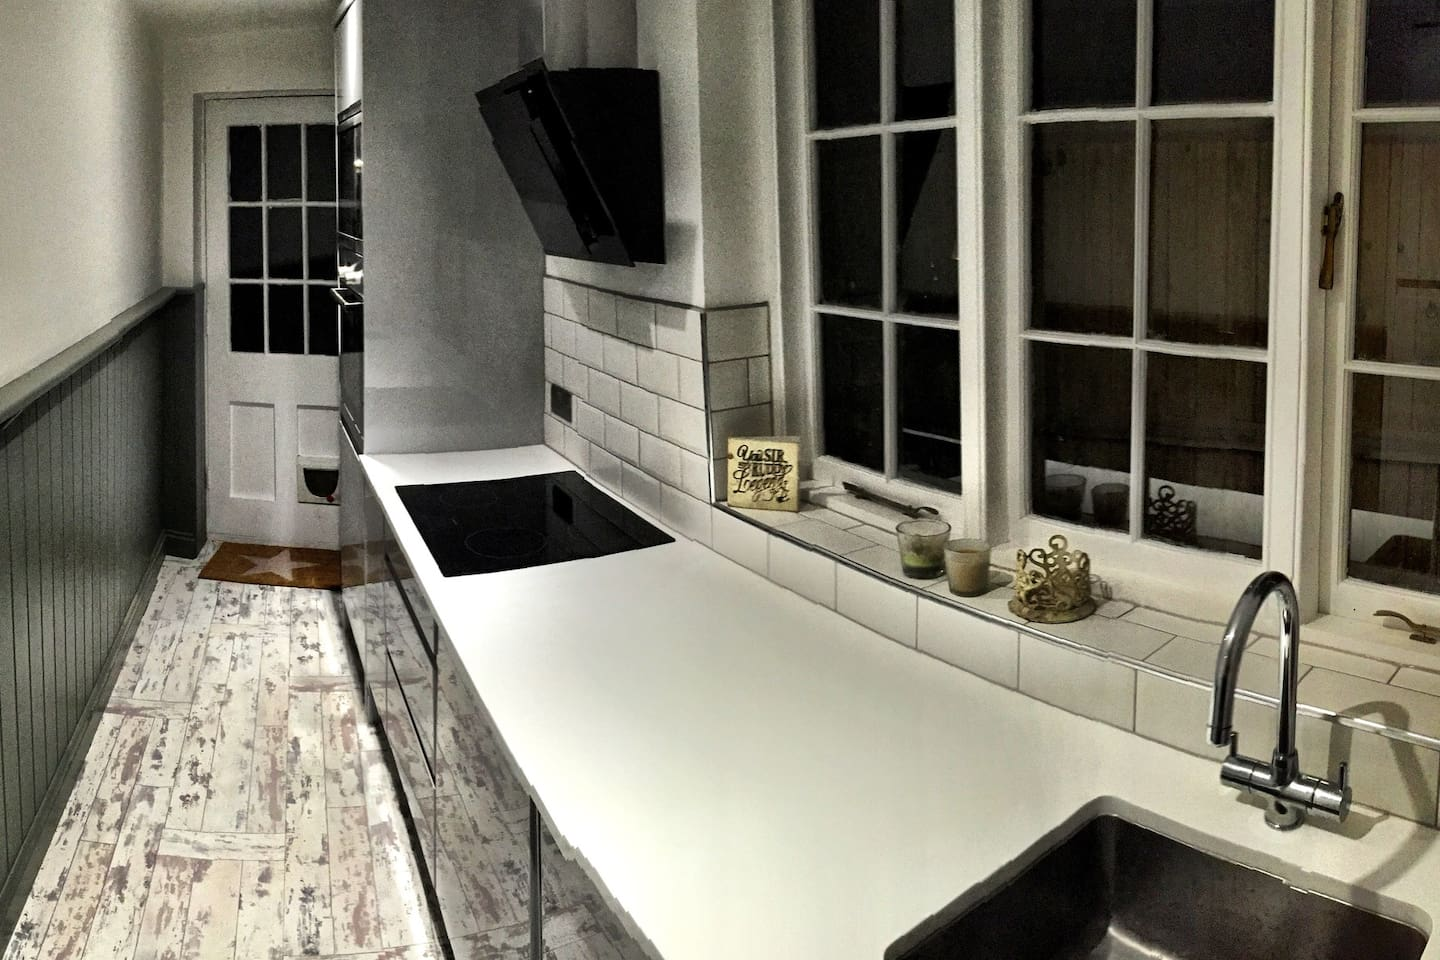 Cool kitchen. Integrated everything!